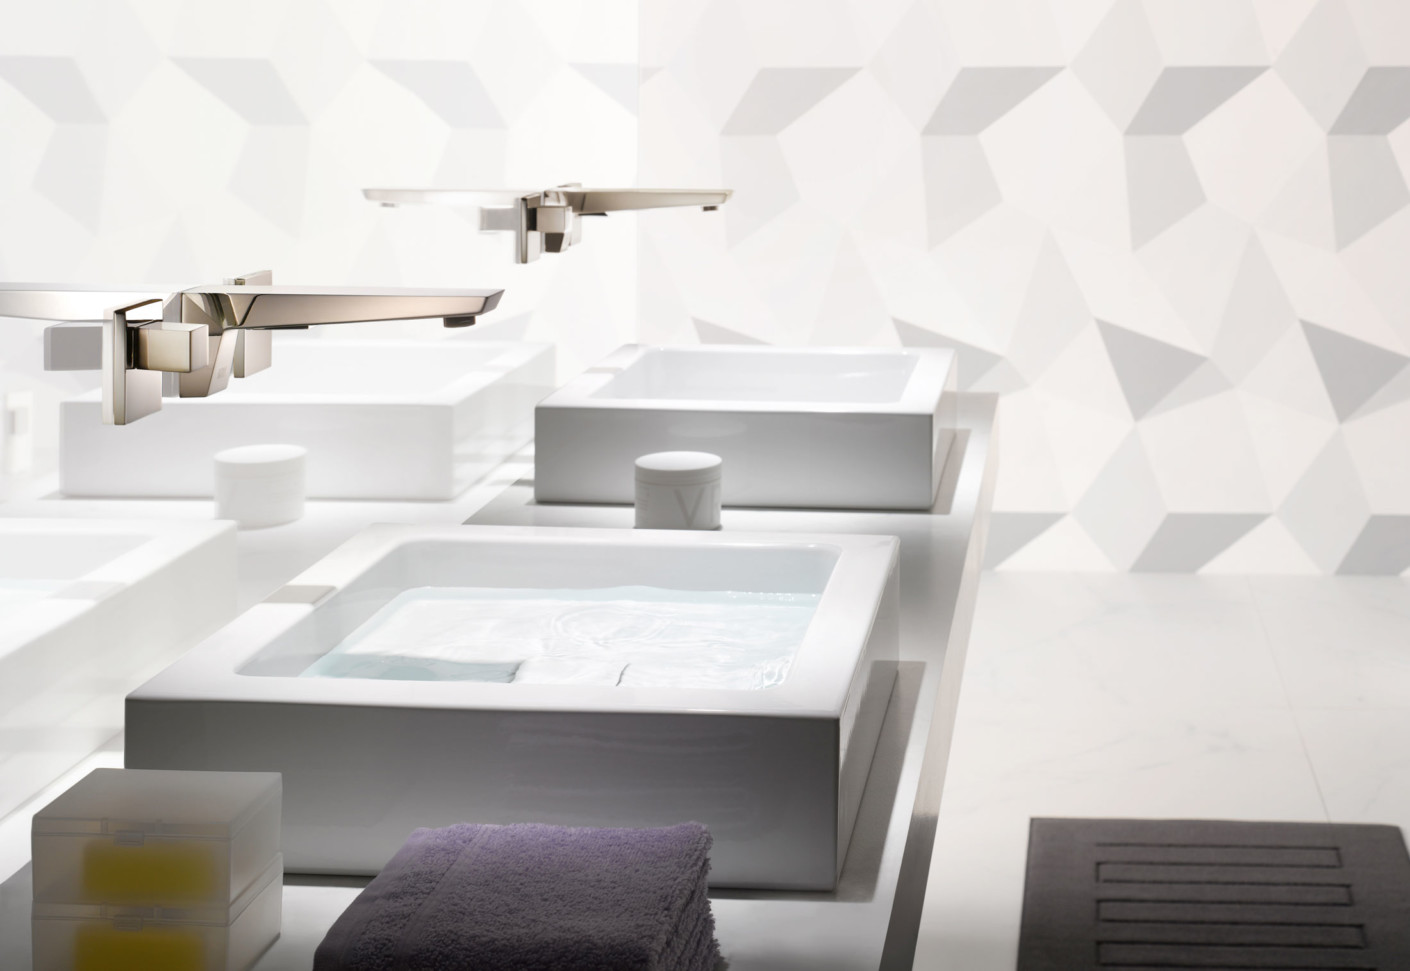 Supernova Wall Mounted Basin Mixer By Dornbracht Stylepark